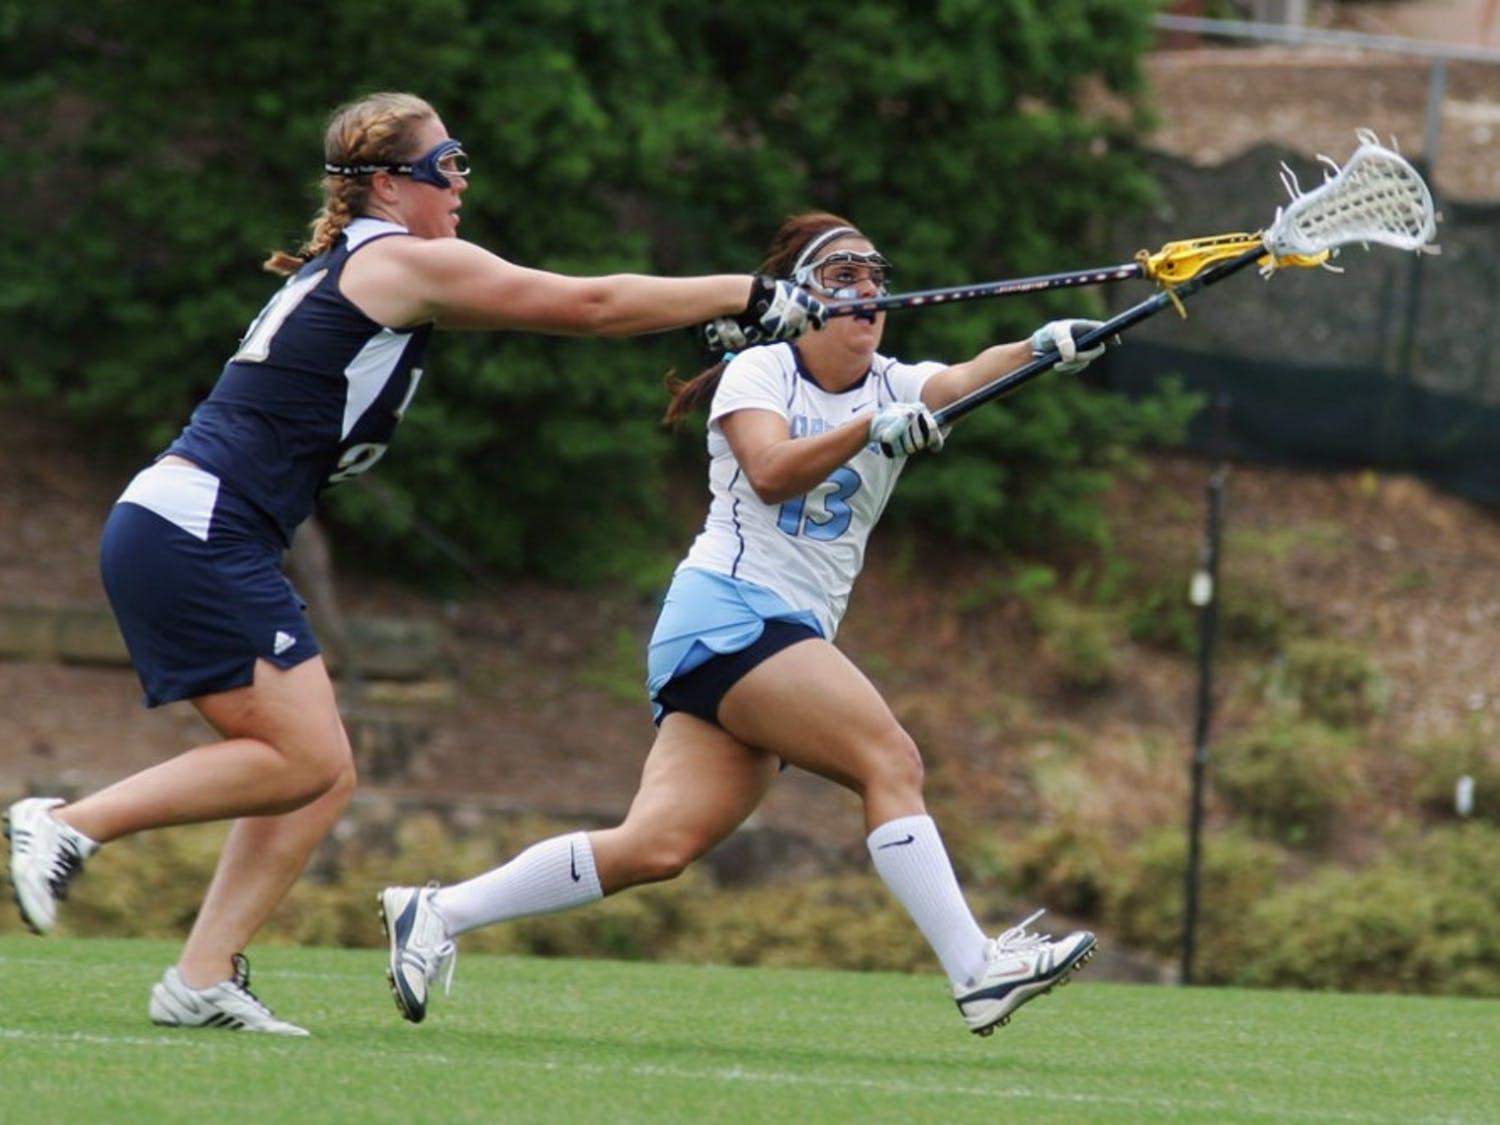 Senior defender Amber Falcone leads the Tar Heels into the national semifinals with the third consecutive All-ACC selections to her name.